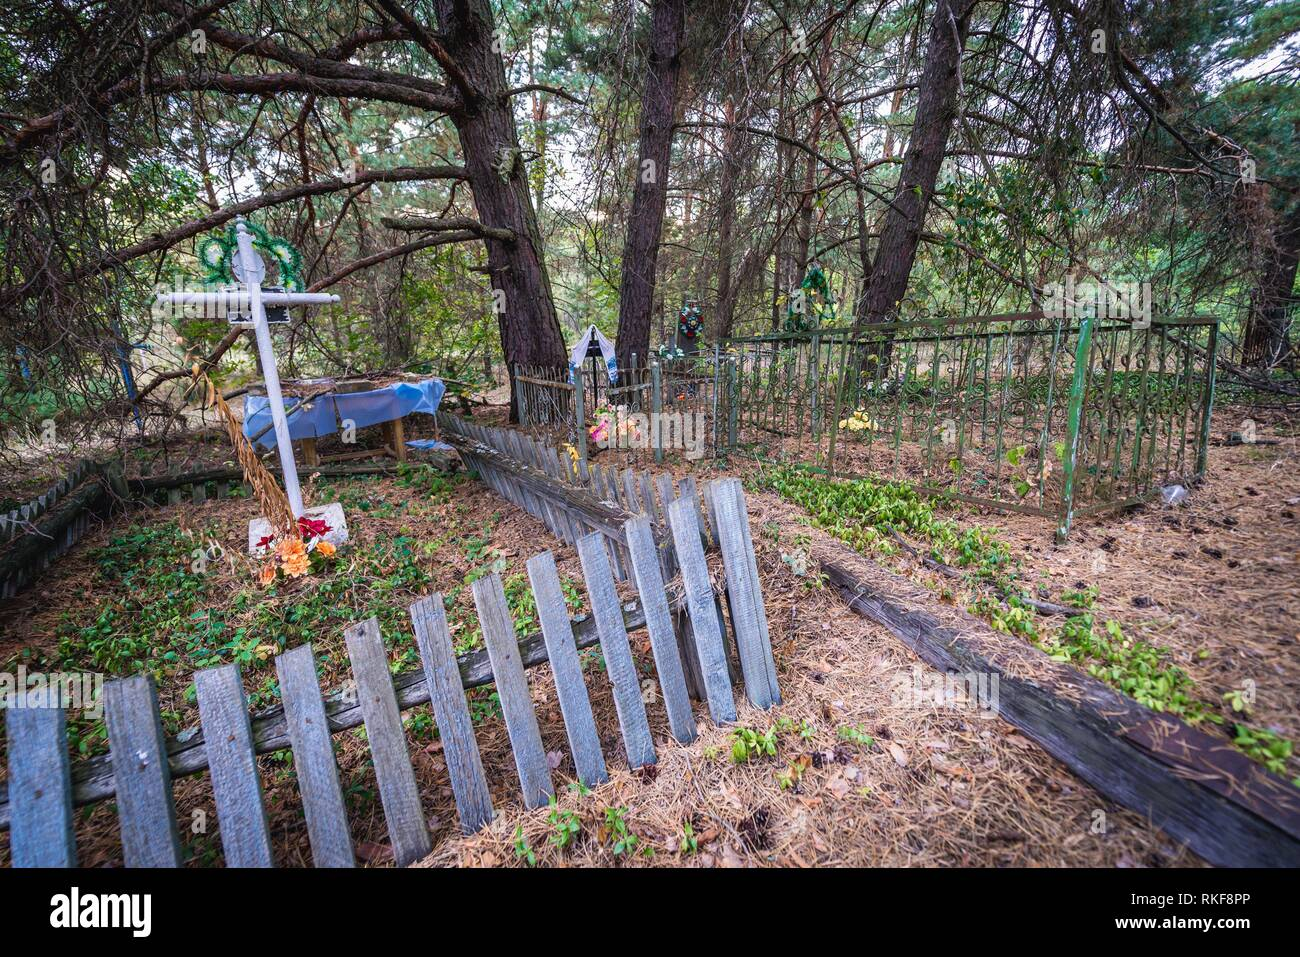 Cemetery in abandoned Zymovyshche village Chernobyl Nuclear Power Plant Zone of Alienation around nuclear reactor disaster in Ukraine. - Stock Image